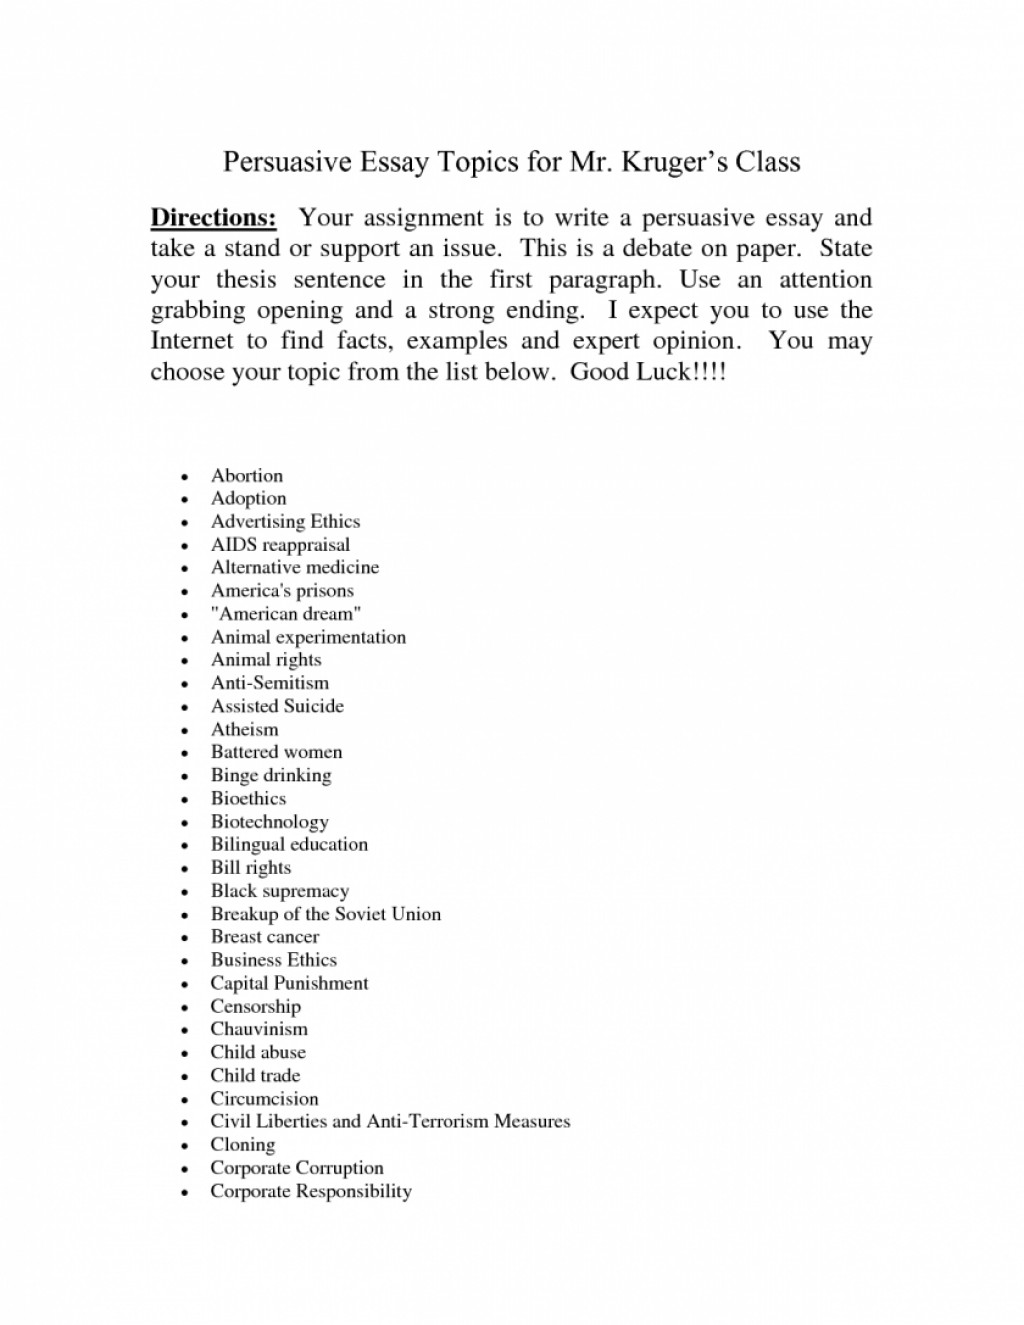 024 Essay Opinion Ppt On Counselling Historych Paper Persuasive Sample Awesome Collection Of Strong Argumentative Topics Best List Topic For 840x1087 Awful Research Medical Easy Large